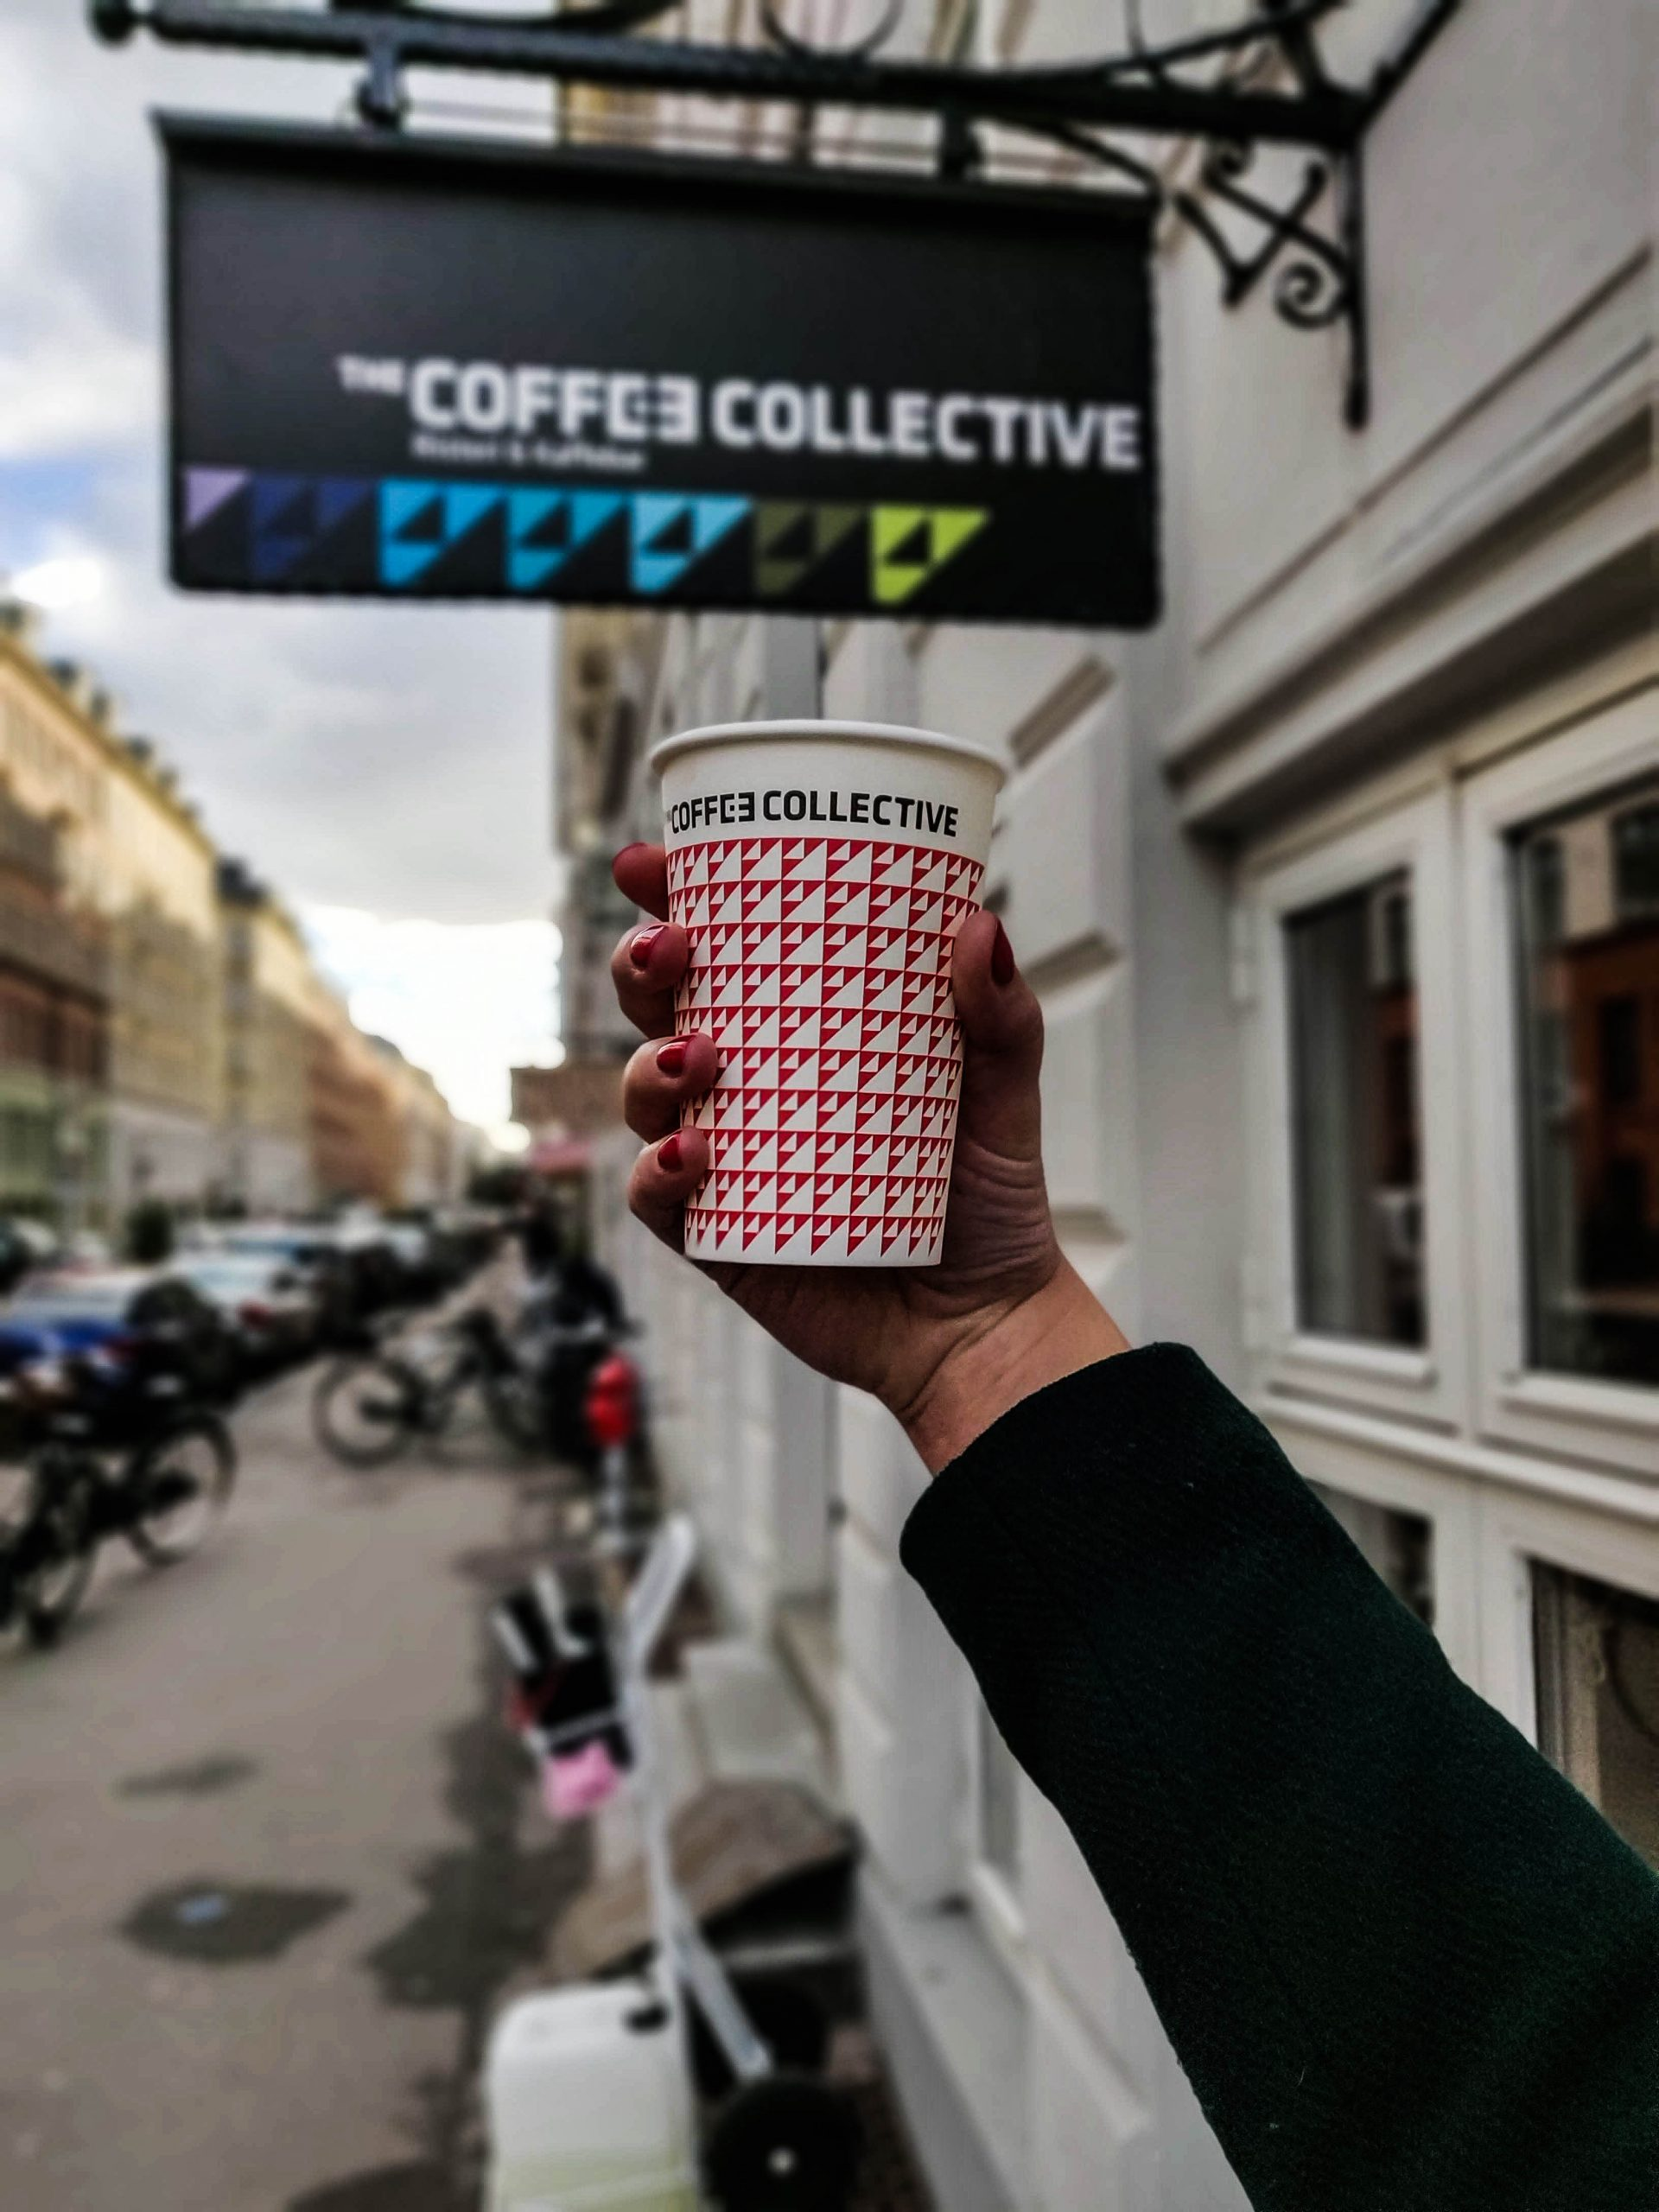 The Coffee Collective Jægersborggade in Kopenhagen